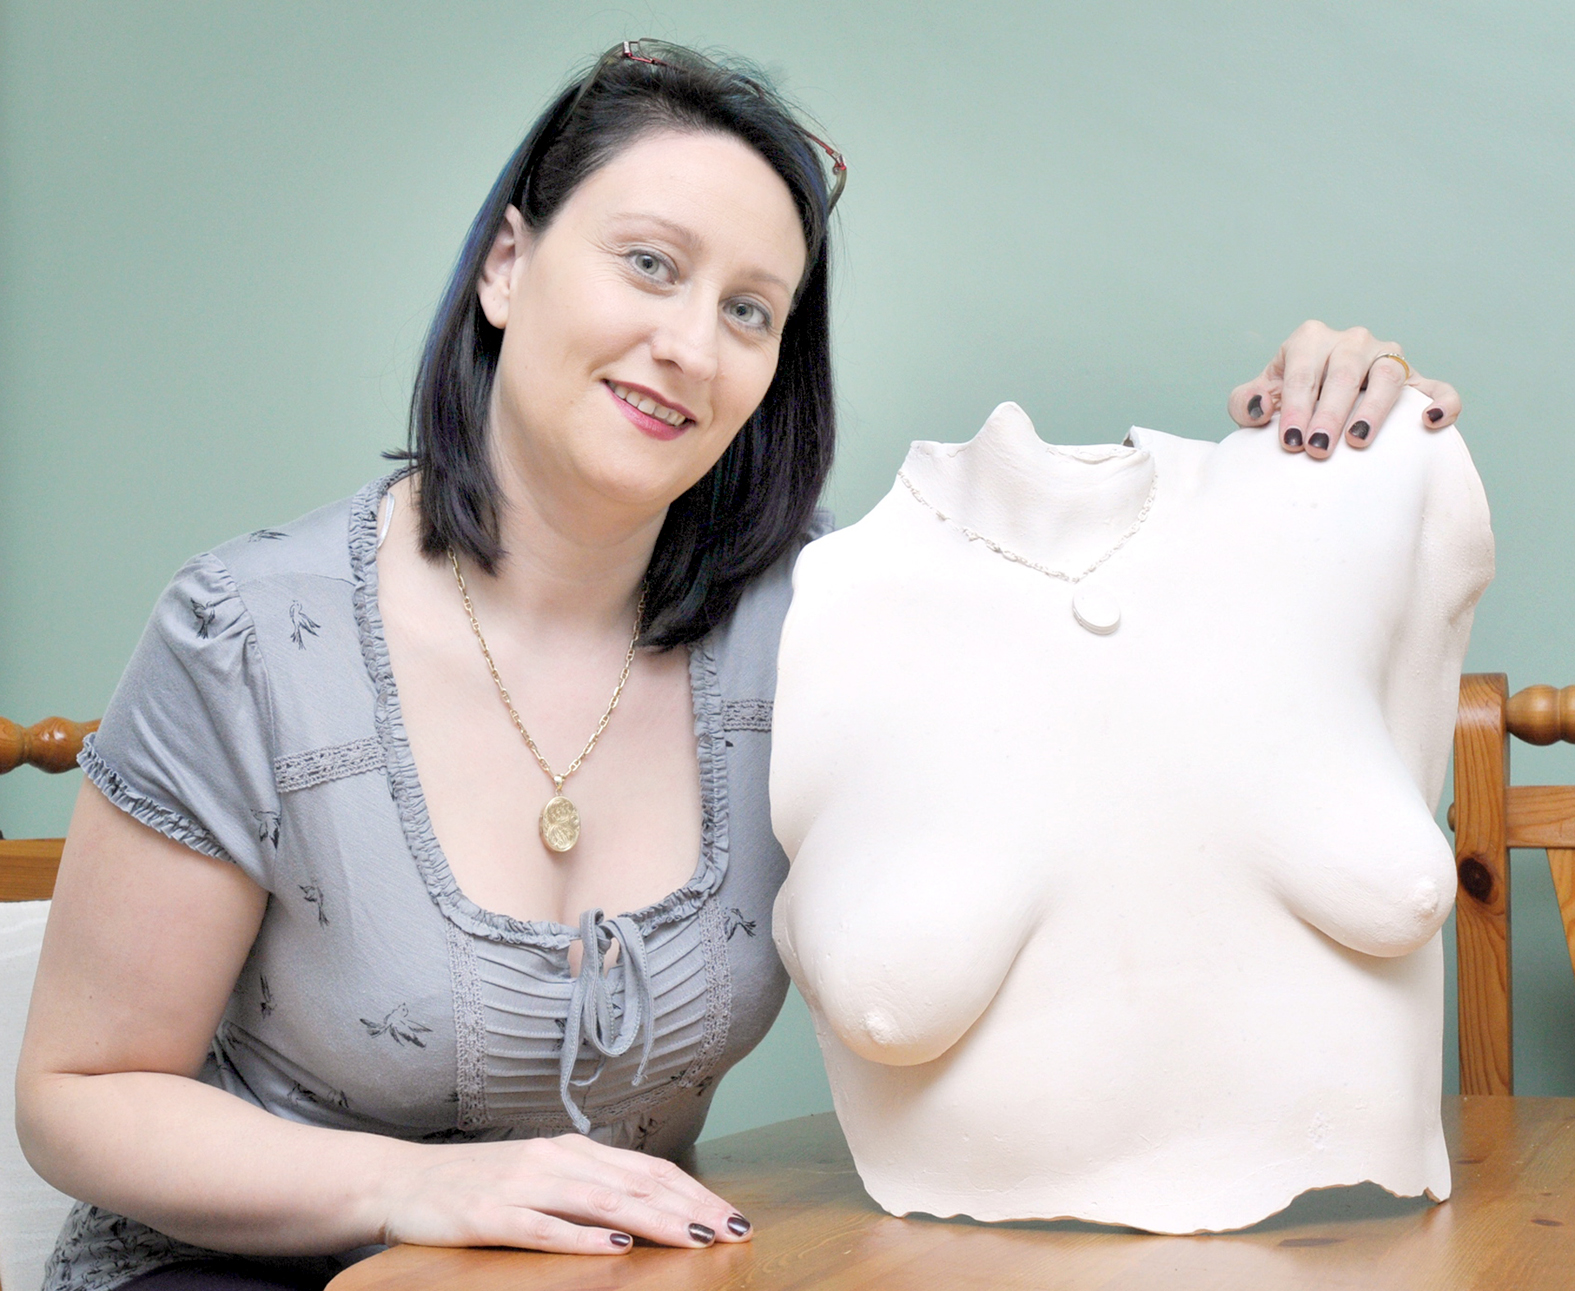 'How I solved the problem of my uneven breasts'